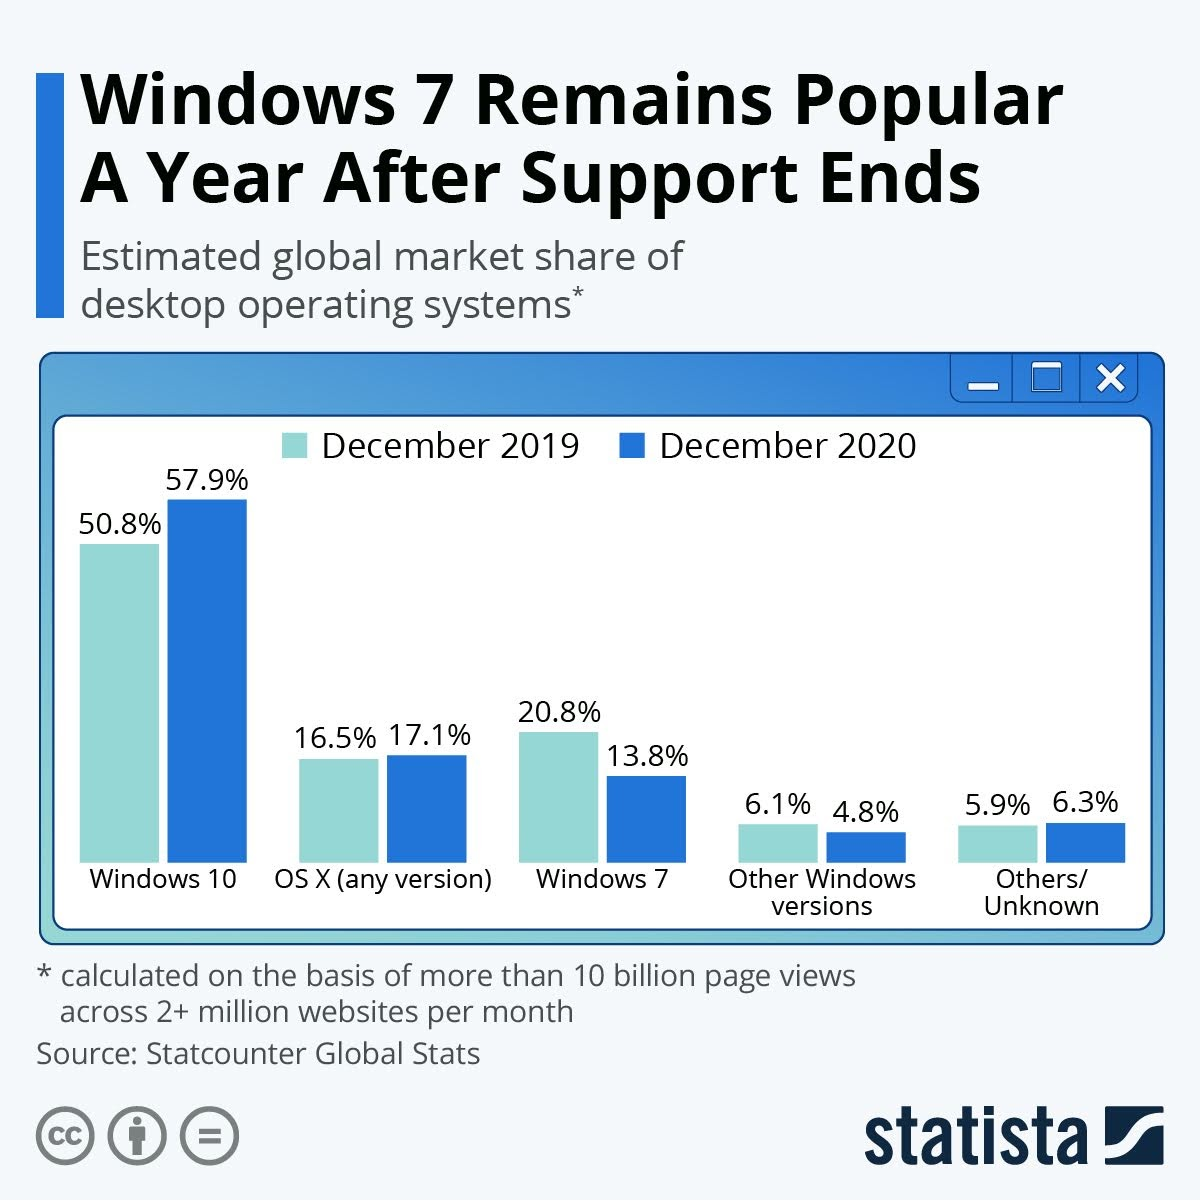 windows-7-remains-popular-a-year-after-support-ends-infographic